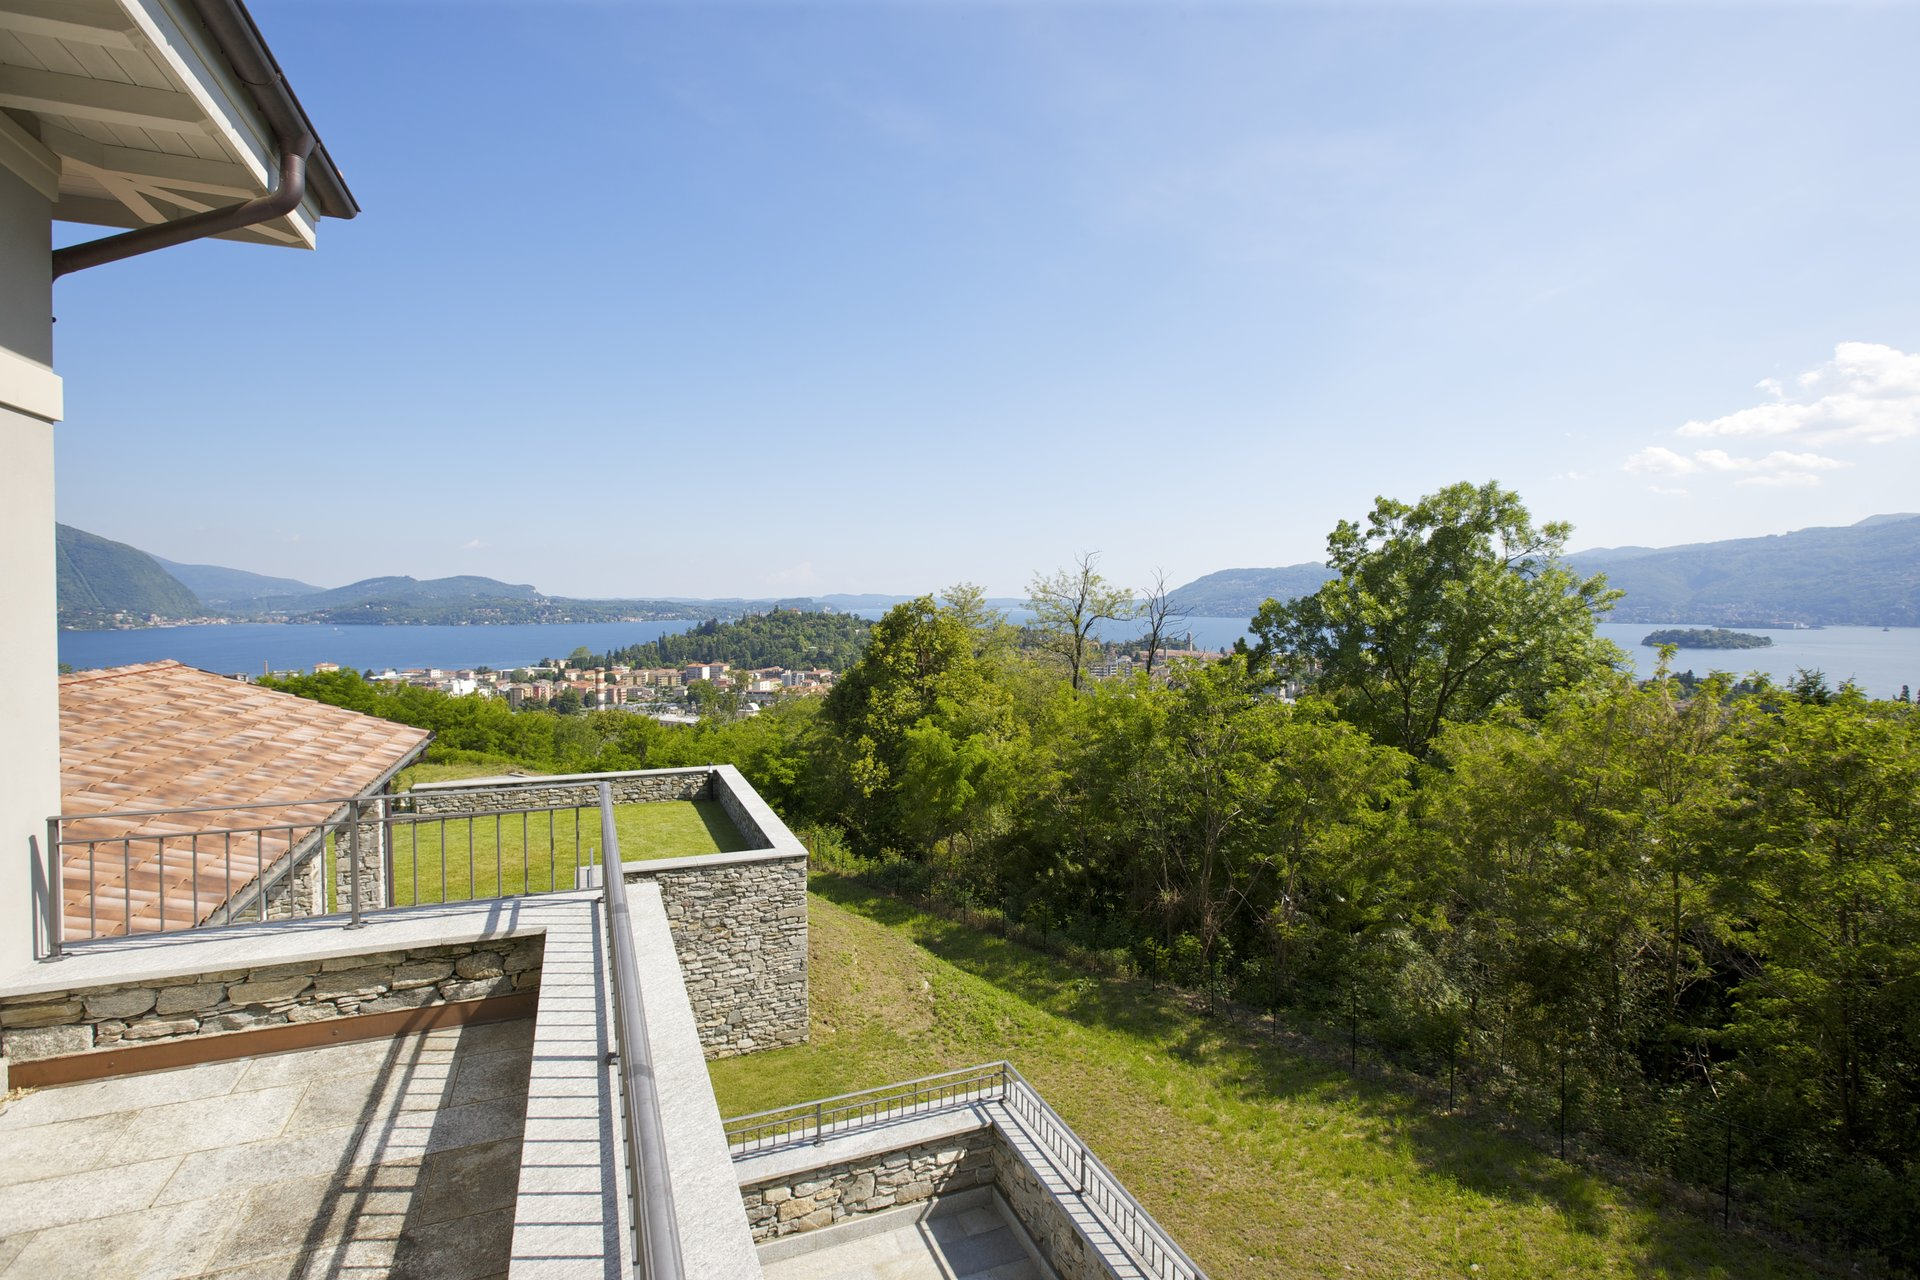 Luxury new villa for sale in Verbania - terrace with lake view